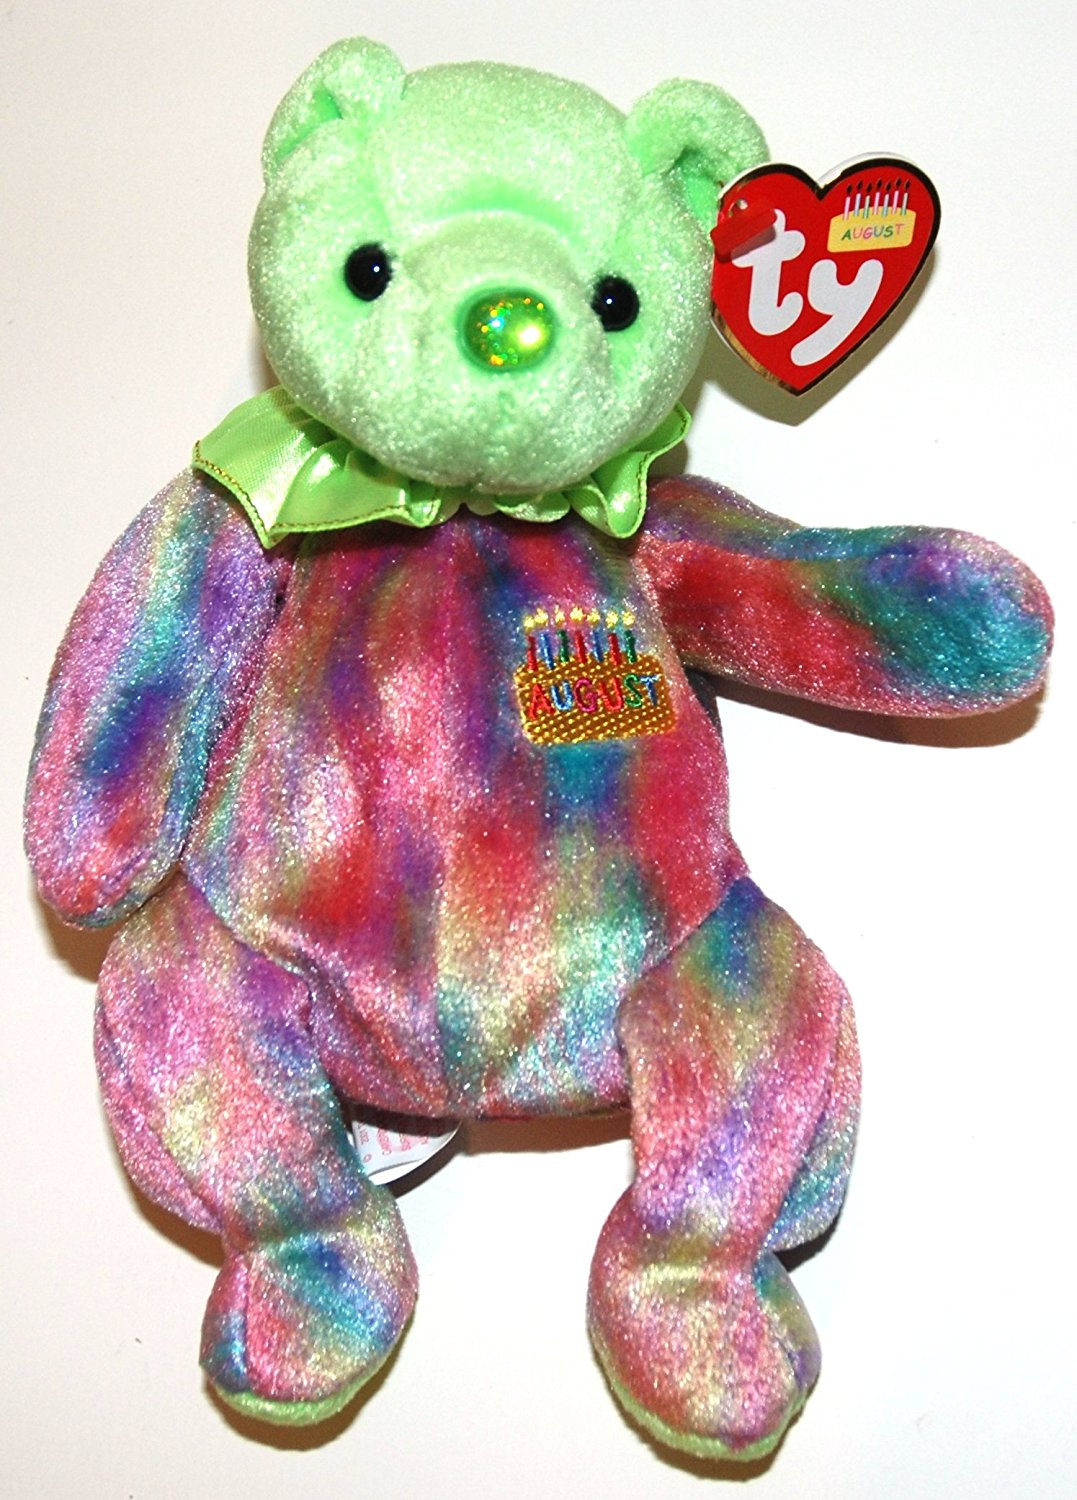 Buy TY Beanie Babies Peridot August Birthday Bear Plush Toy Stuffed ... 9b23cd894b75